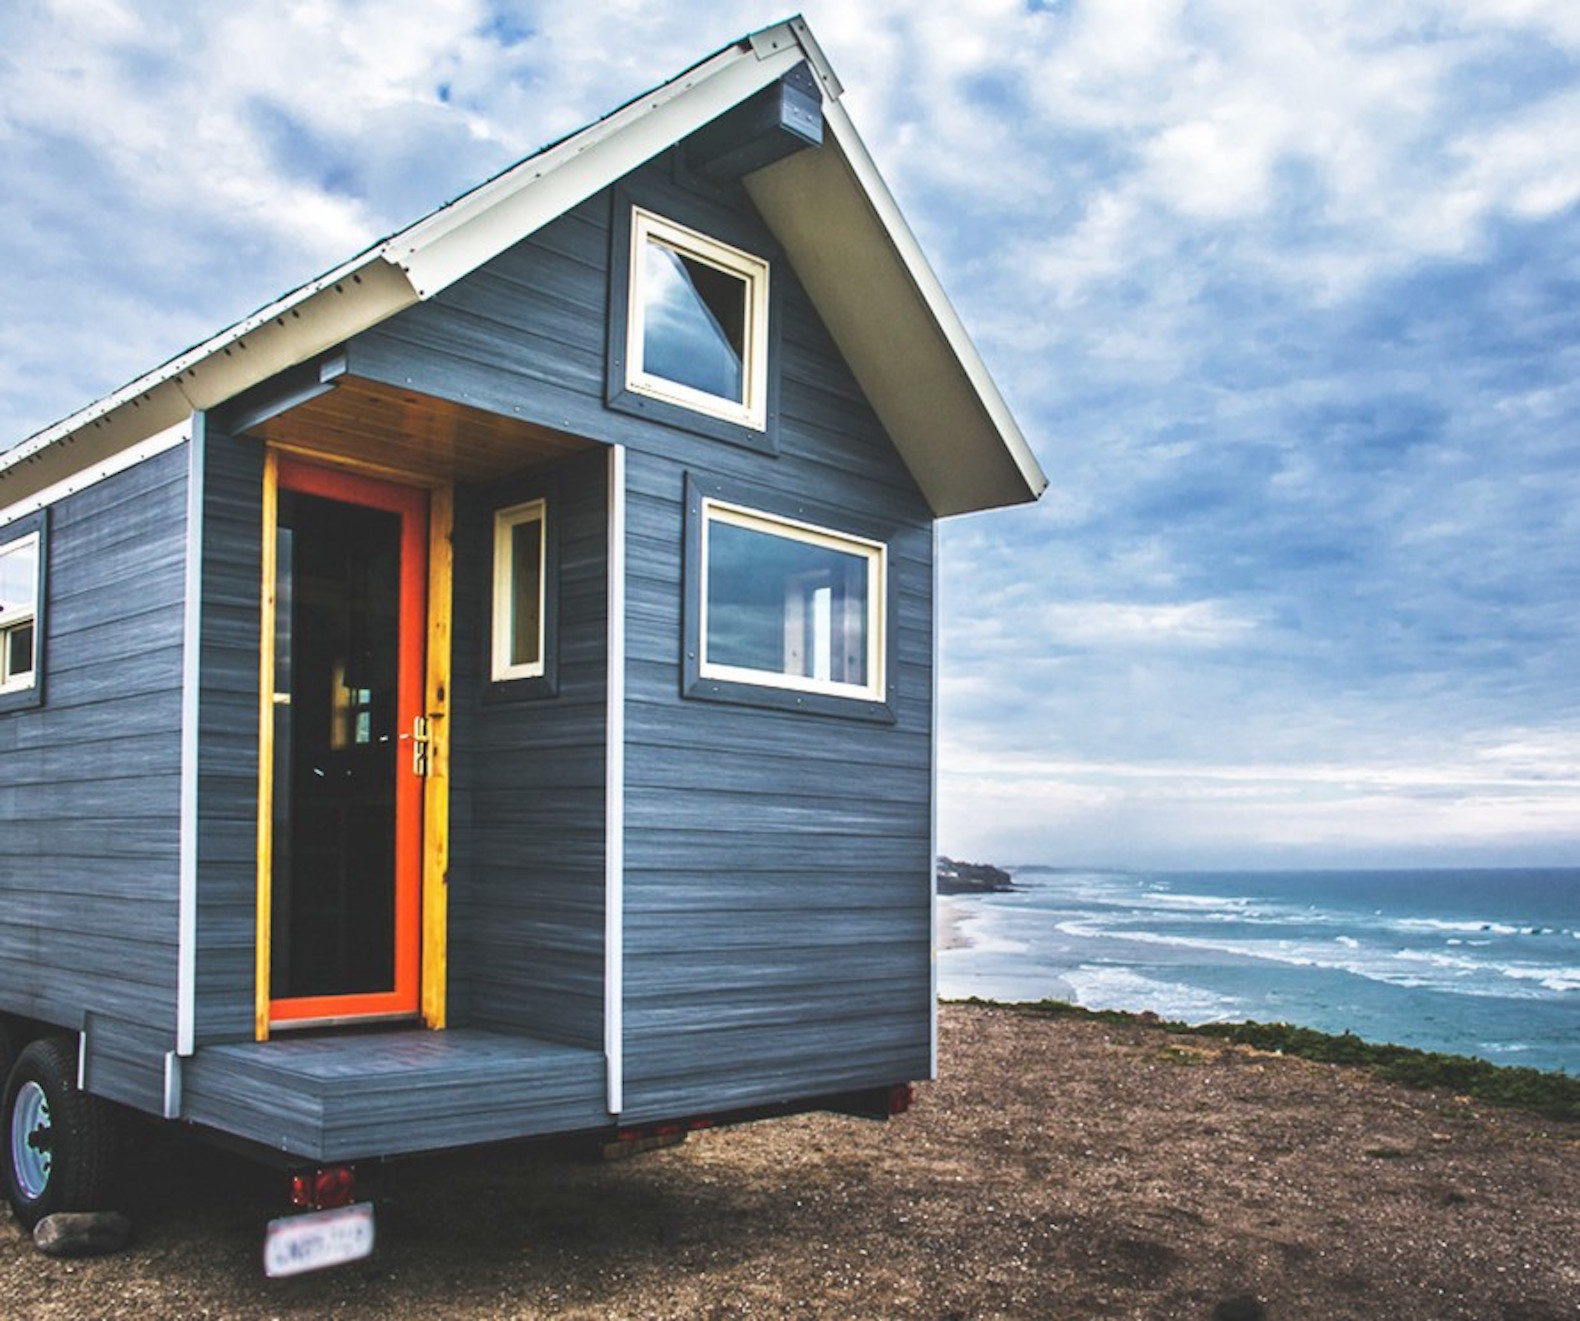 6 Tiny Homes under $50,000 you can buy right now | Inhabitat ...